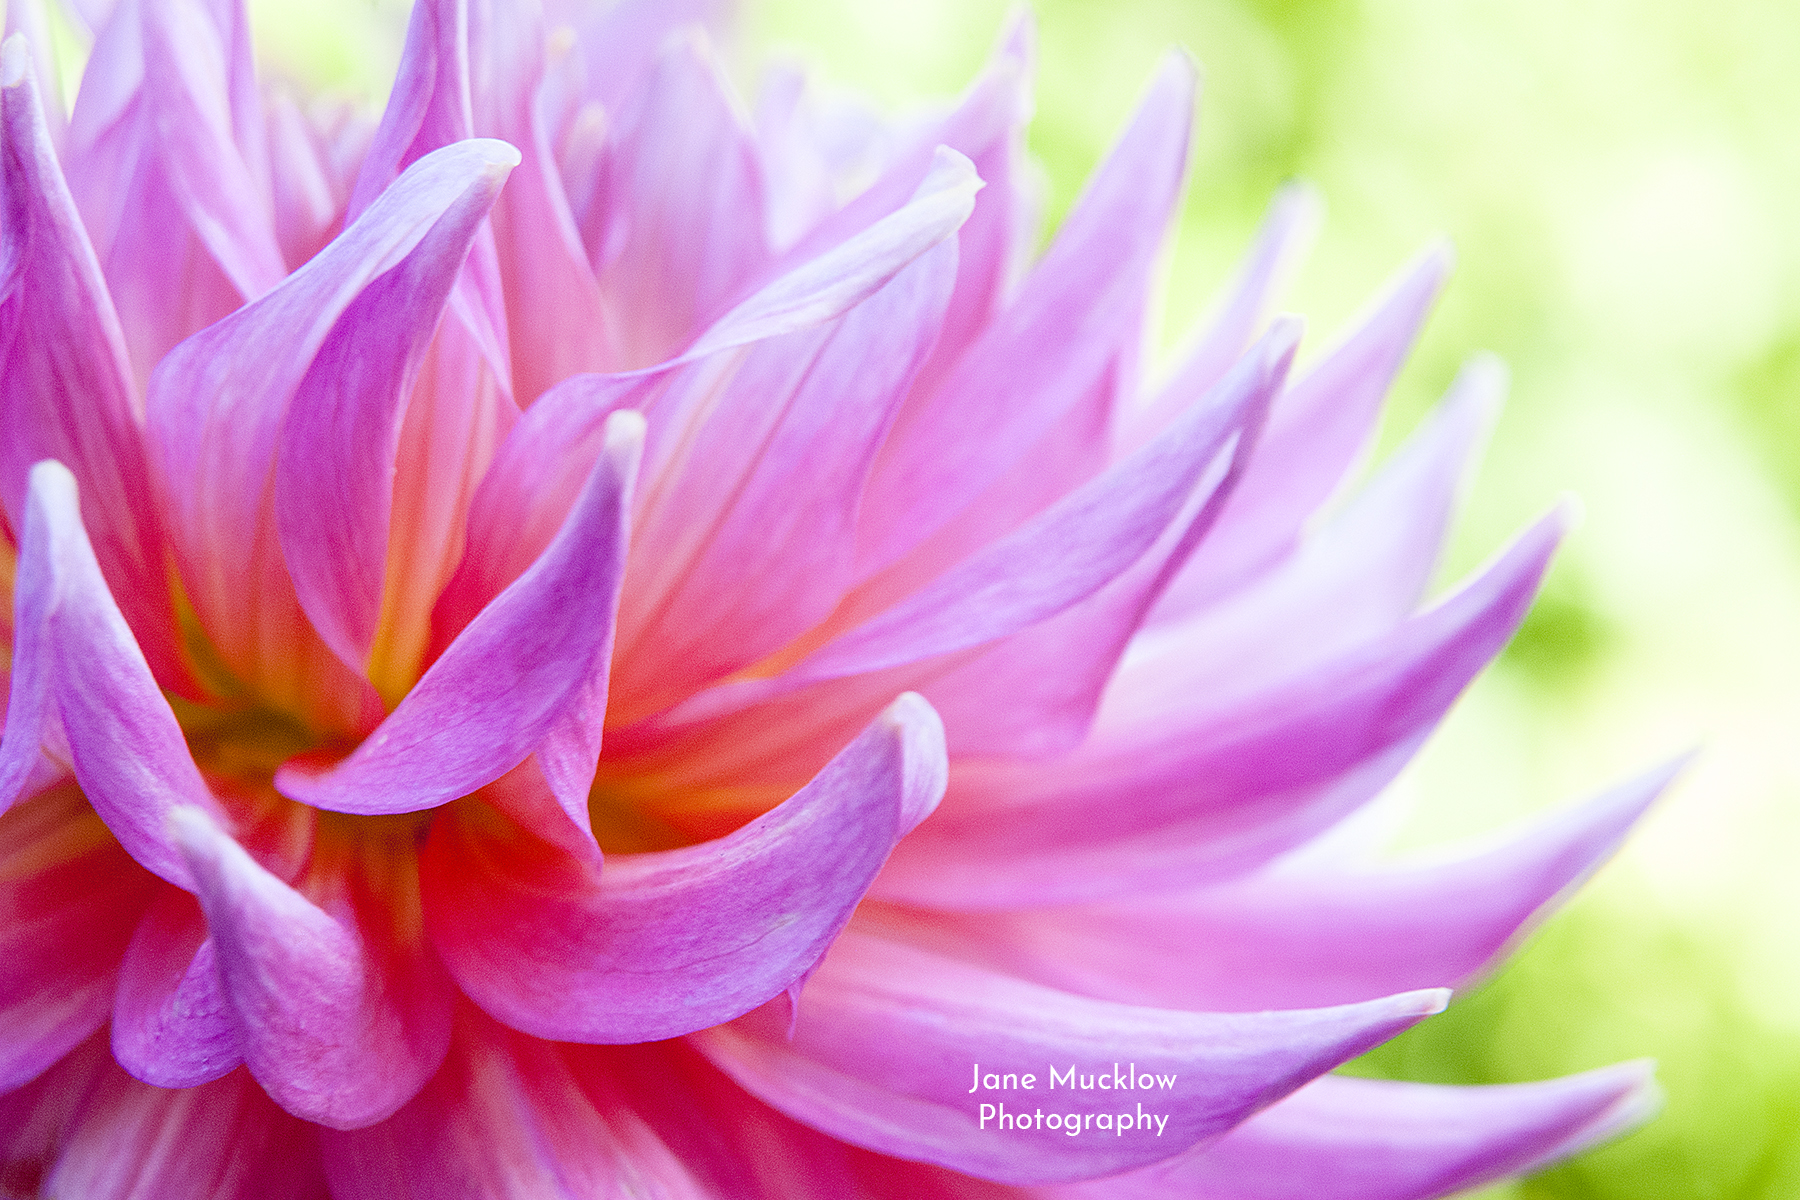 Photo of a dahlia flower by Jane Mucklow